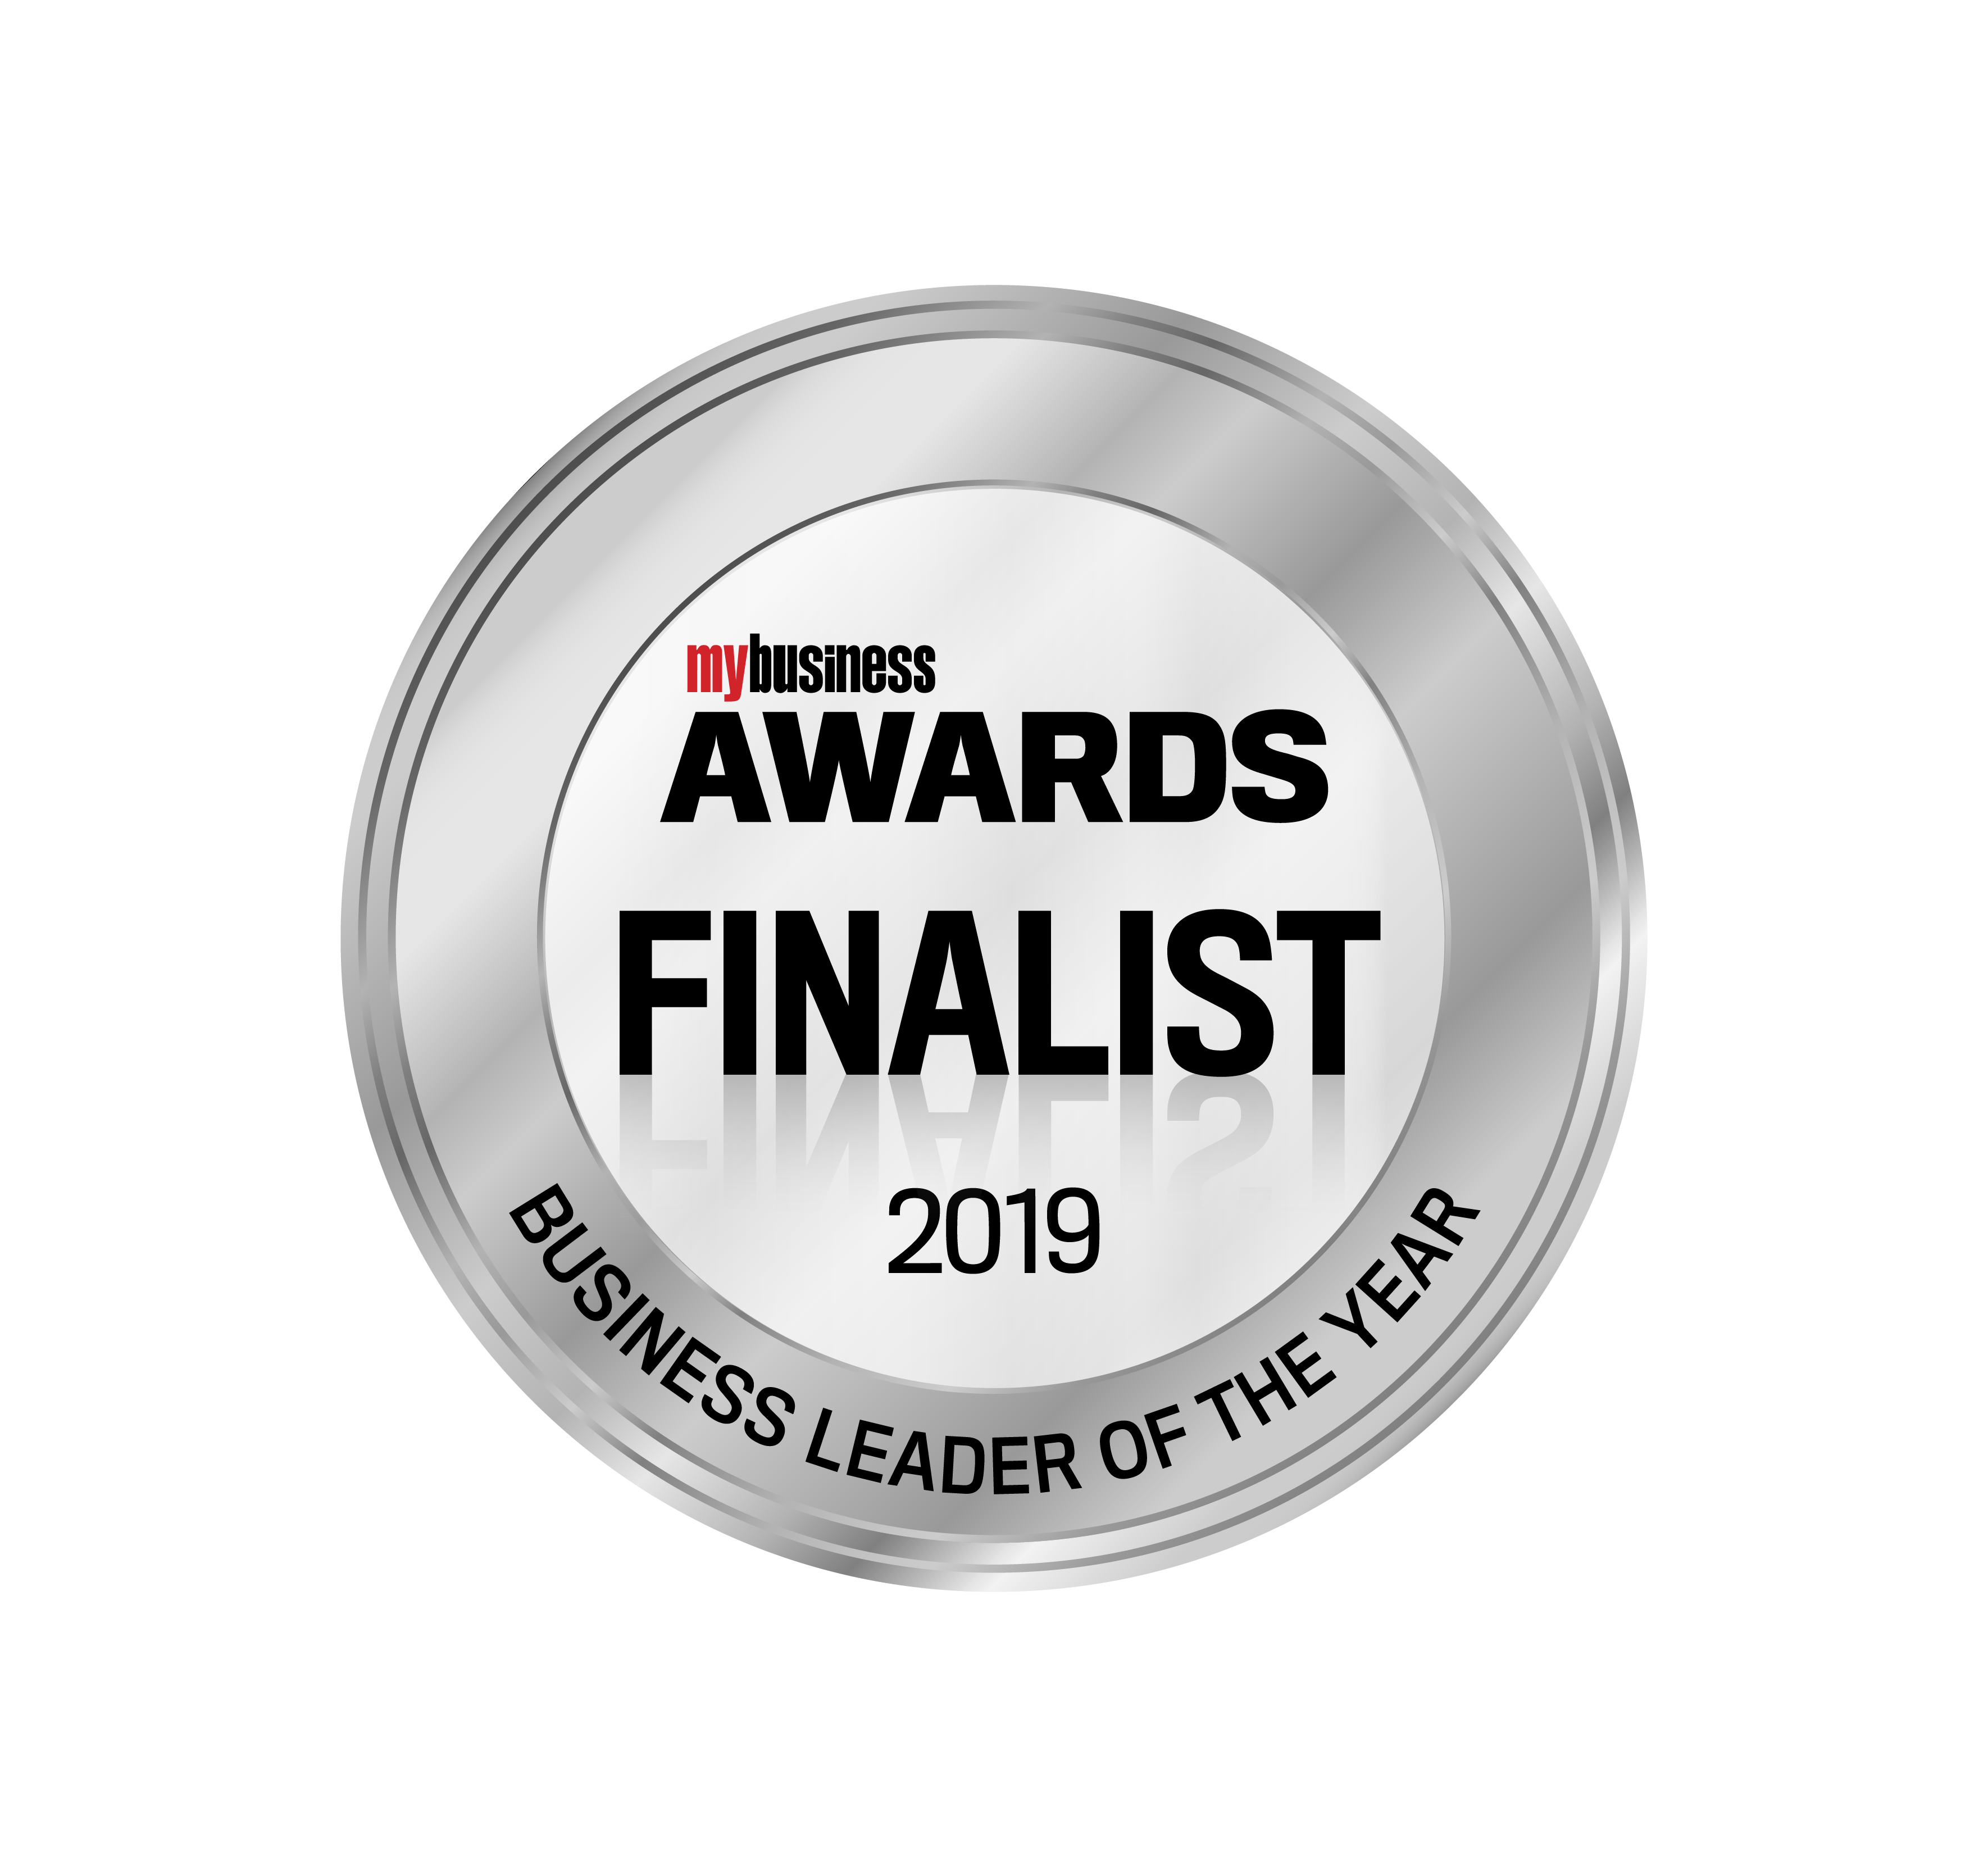 my-business-awards-2019-finalist